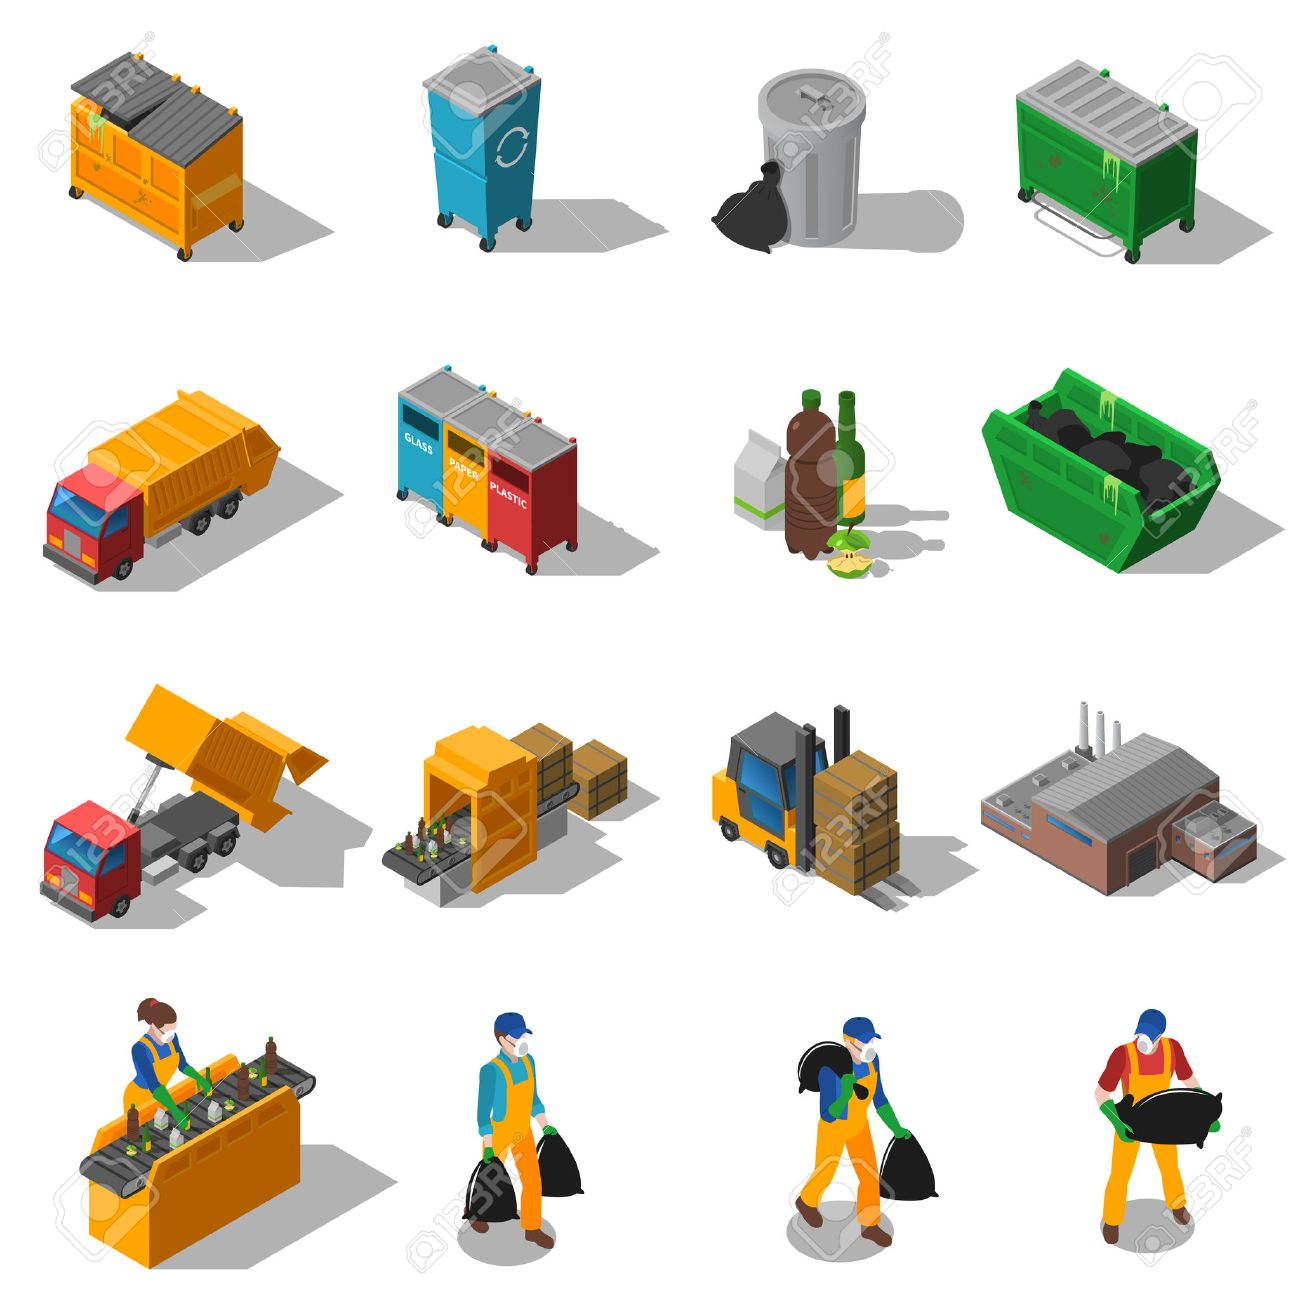 Garbage recycling and green waste collection services and facilities isometric icons collection abstract isolated shadow vector illustration - 55977324